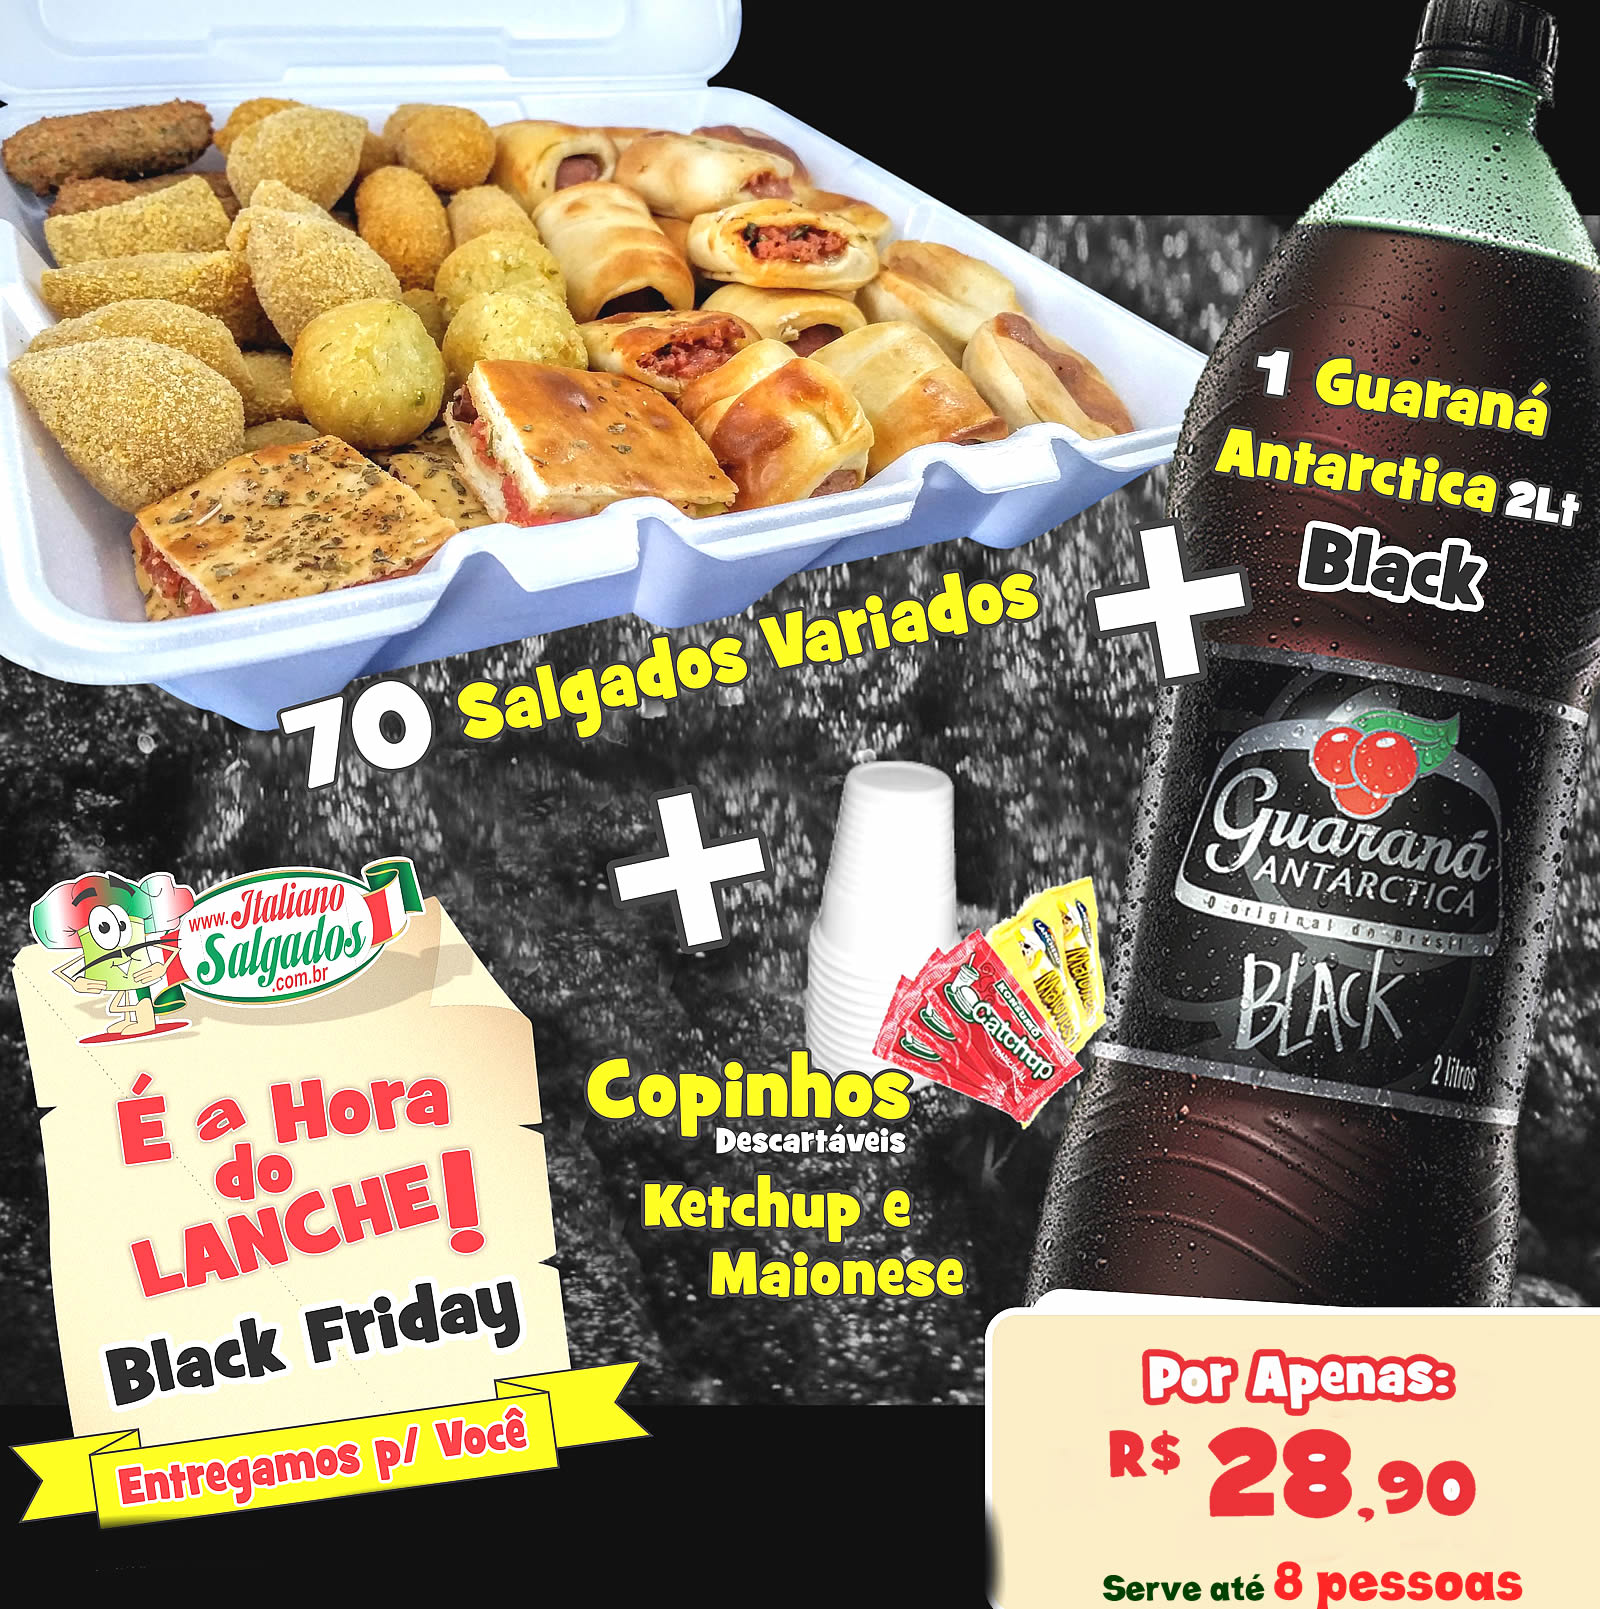 É a Hora do Lanche Black Friday com Guaraná Antarctica Black 2L.